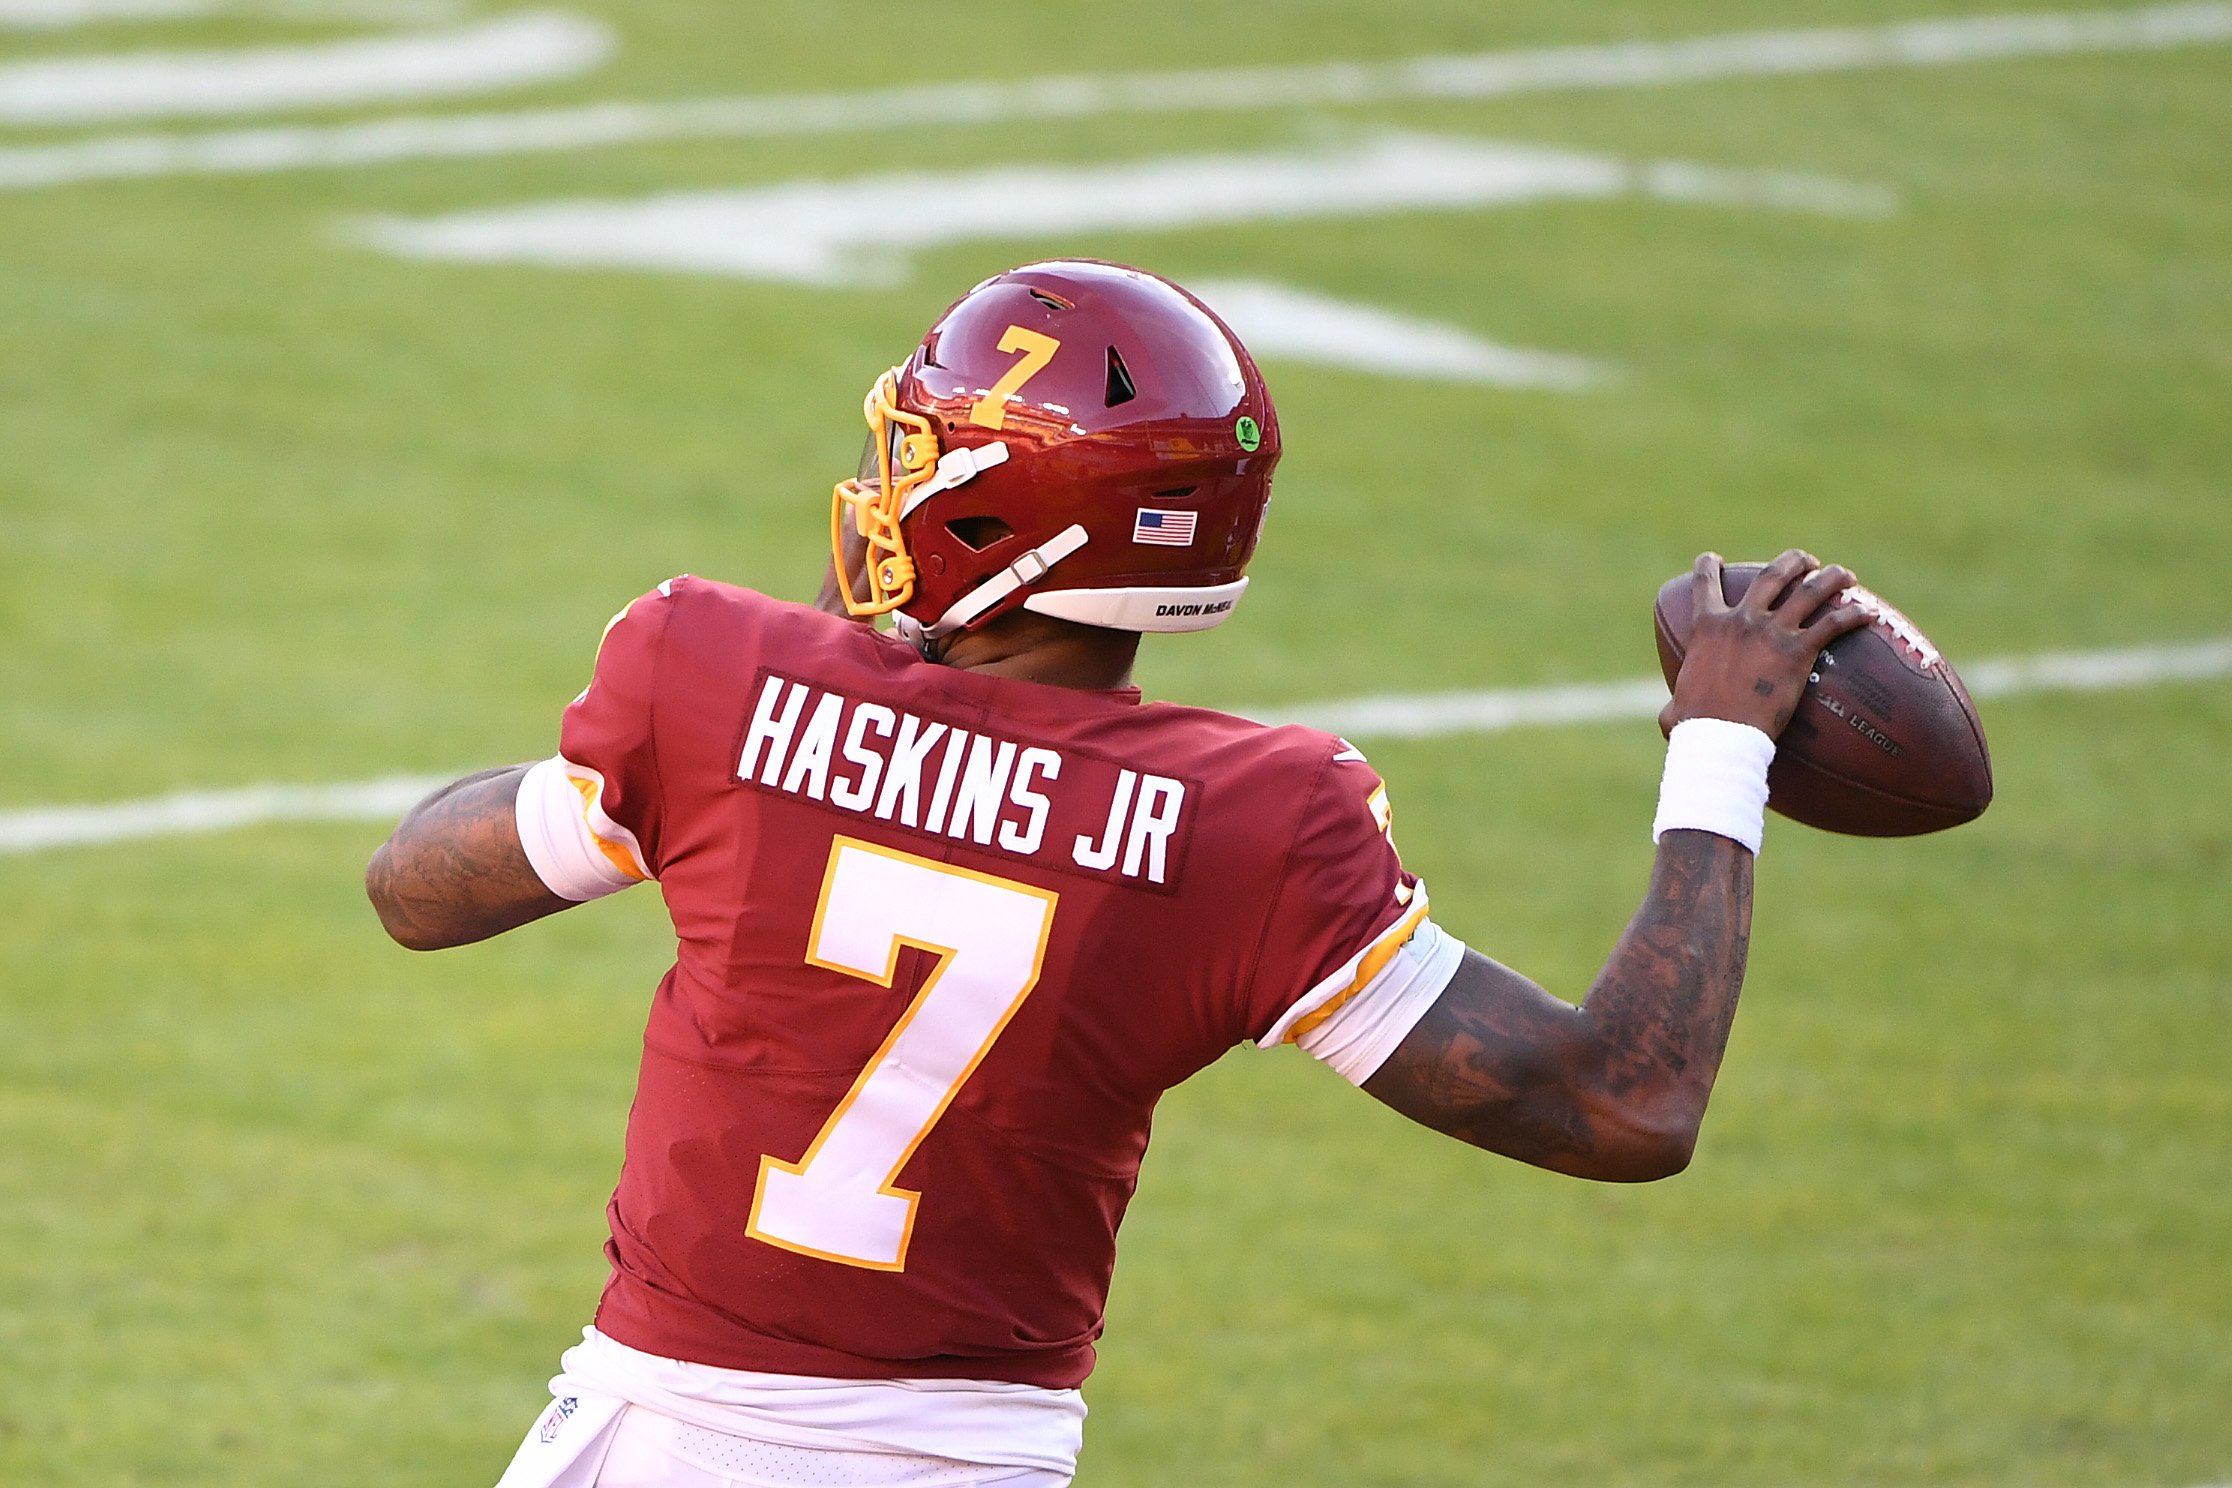 Dwayne Haskins quickly wore out his welcome in Washington.